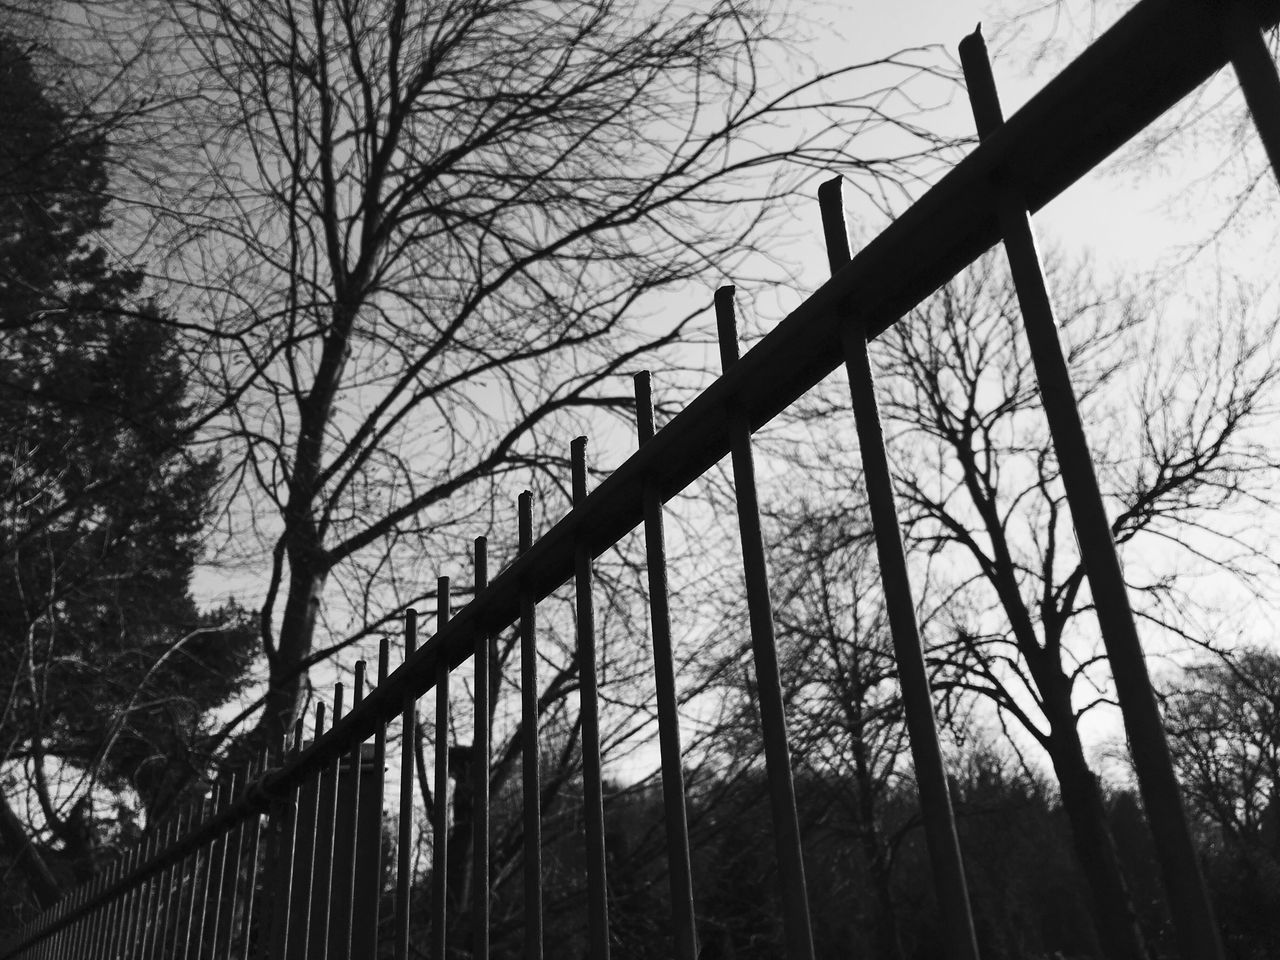 Low Angle View Of Fence And Bare Trees At Dusk